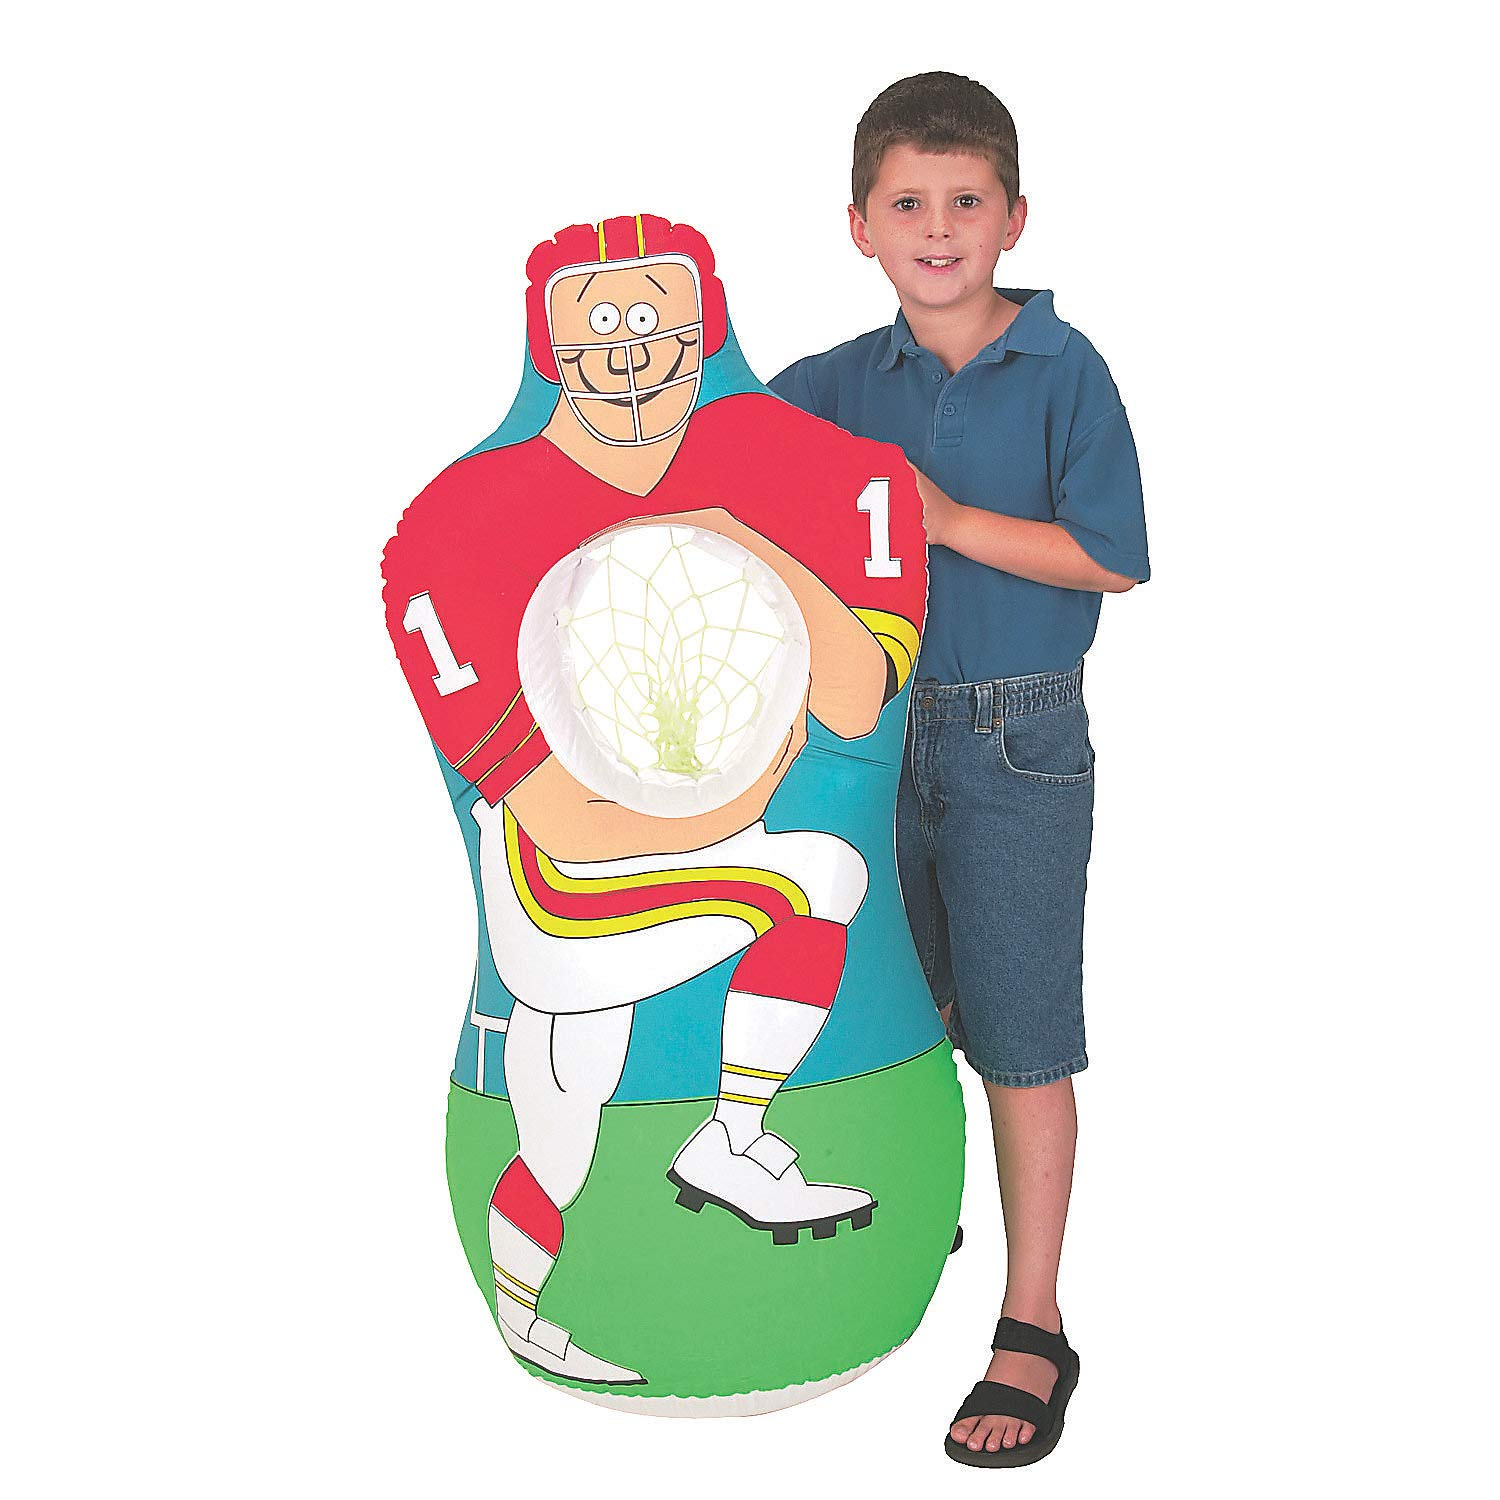 Fun Express - Inflate Football Player Catch Game - Toys - Inflates - Inflatable Games - 1 Piece by Fun Express